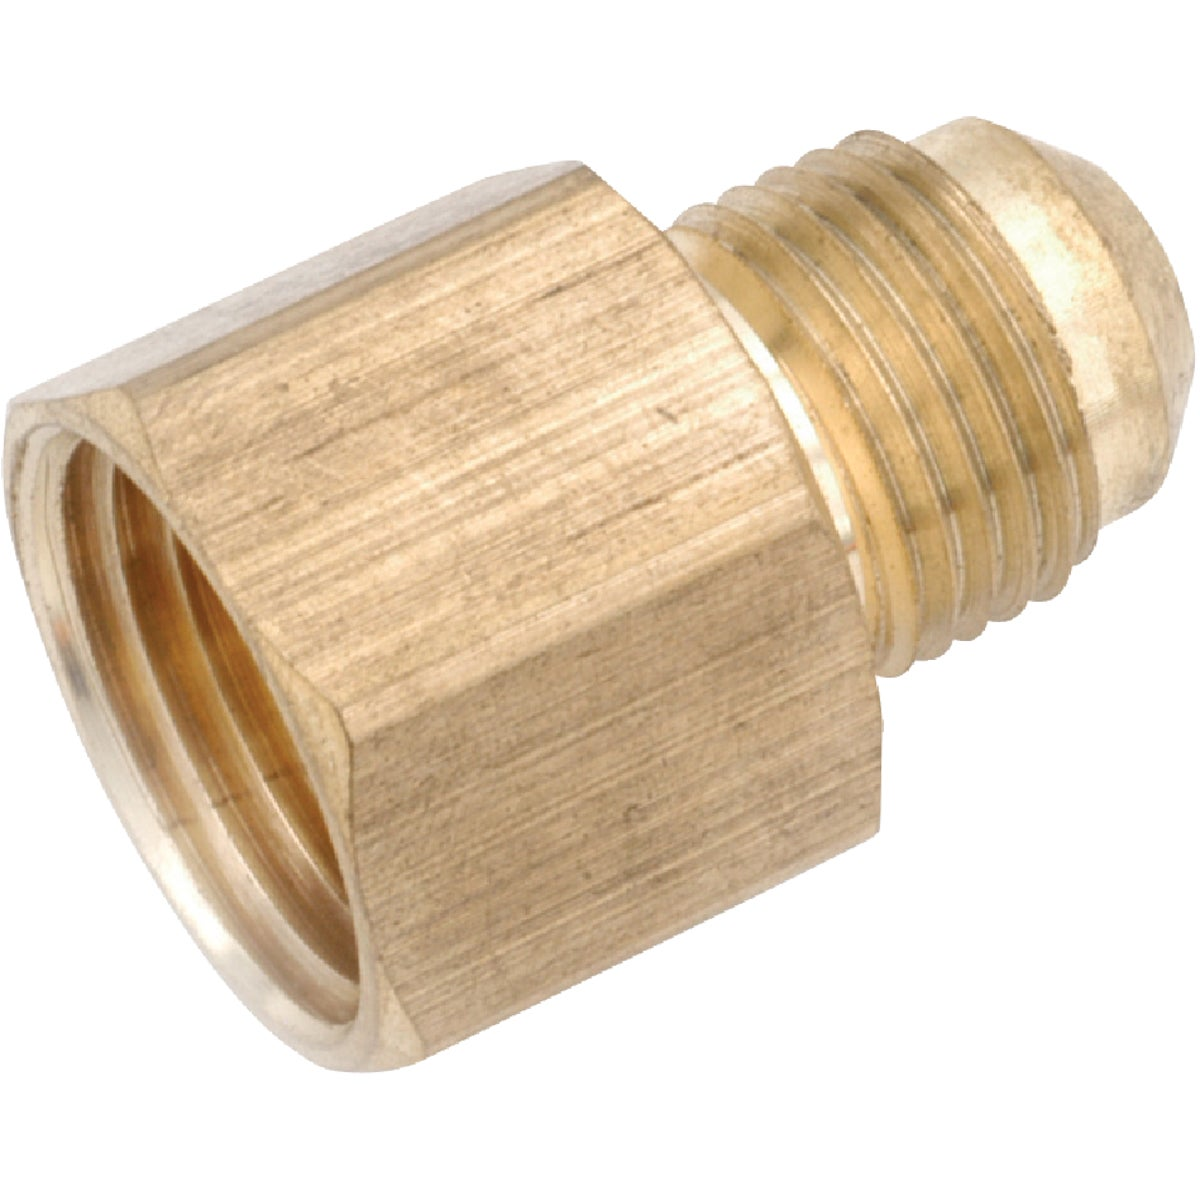 1/2X3/4 CONNECTOR - 754046-0812 by Anderson Metals Corp